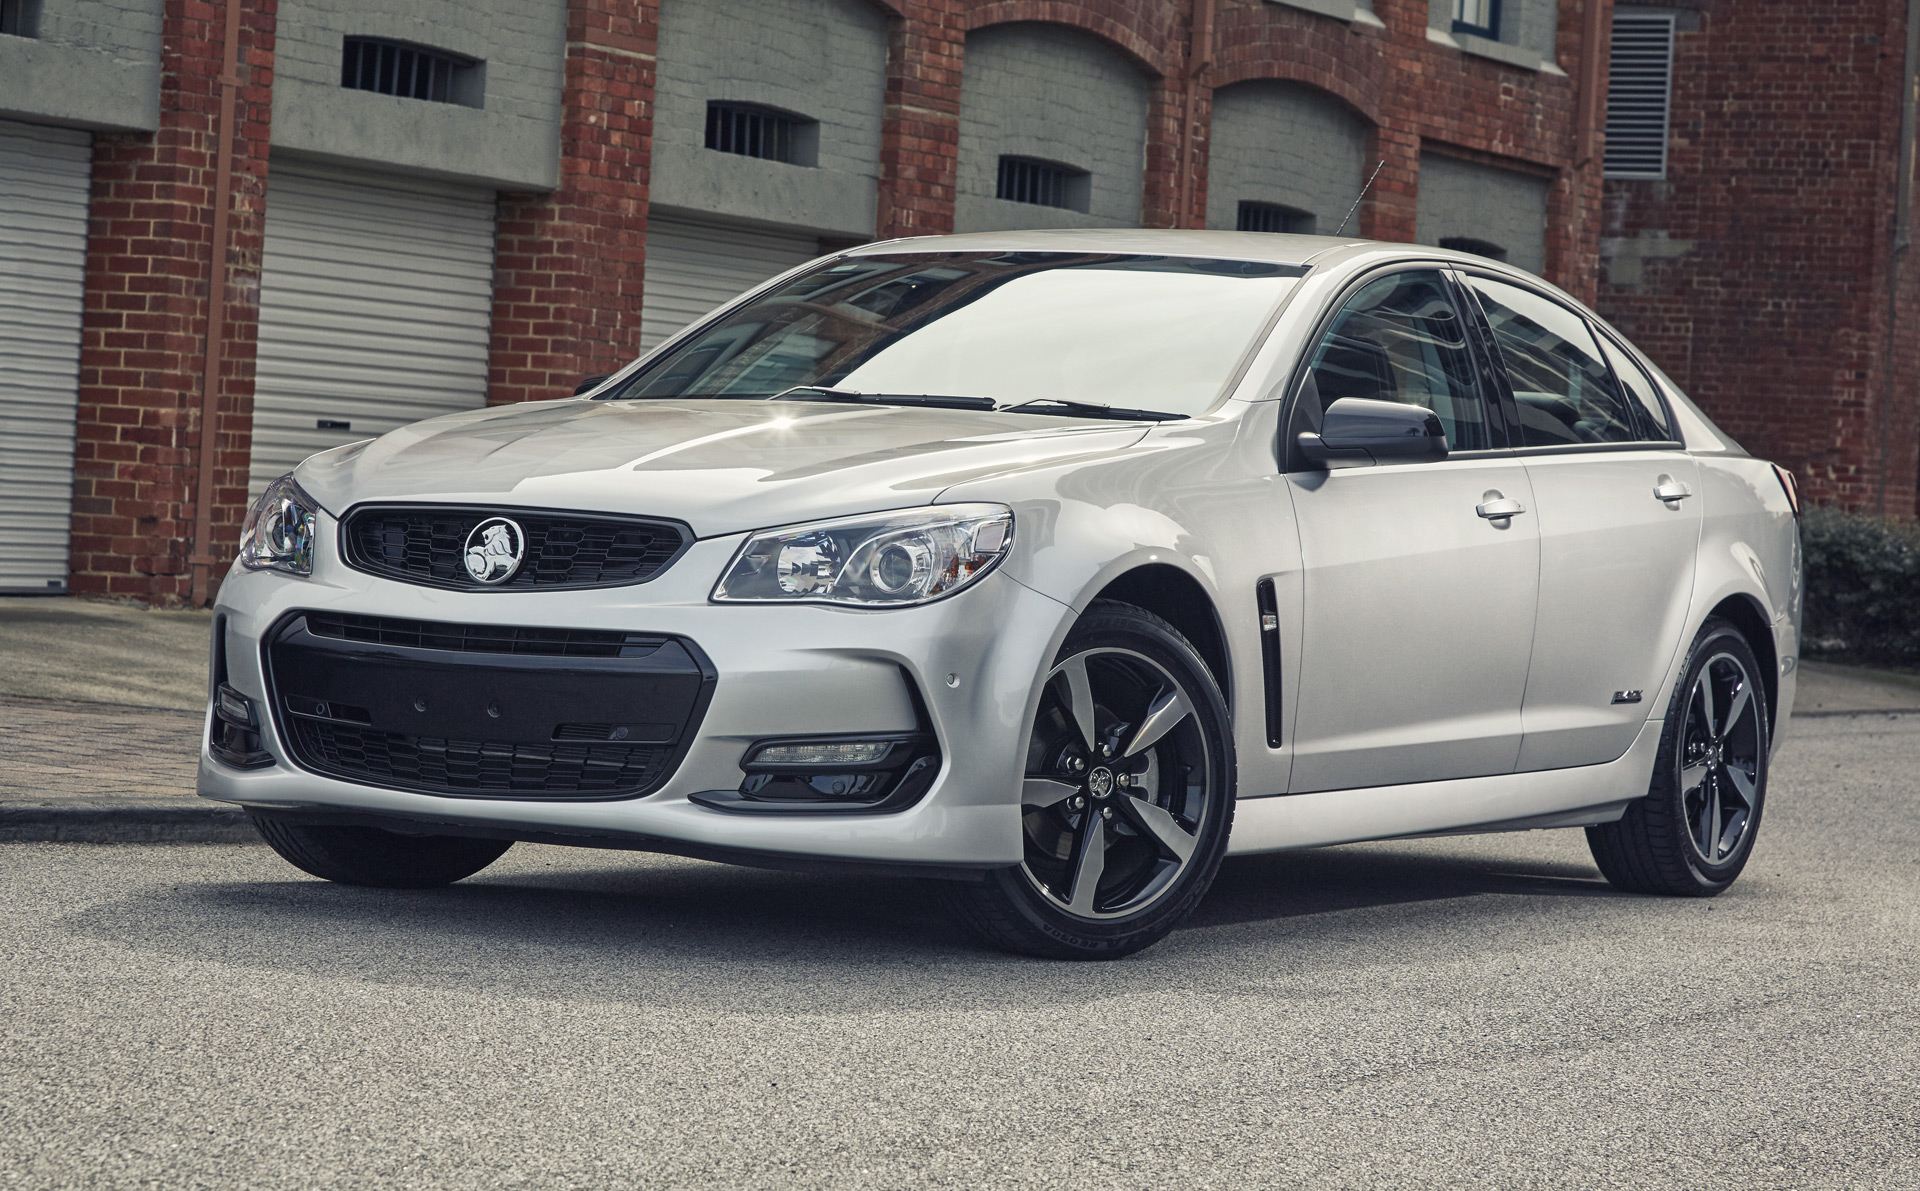 2016 holden commodore ups style with black edition trim sciox Gallery